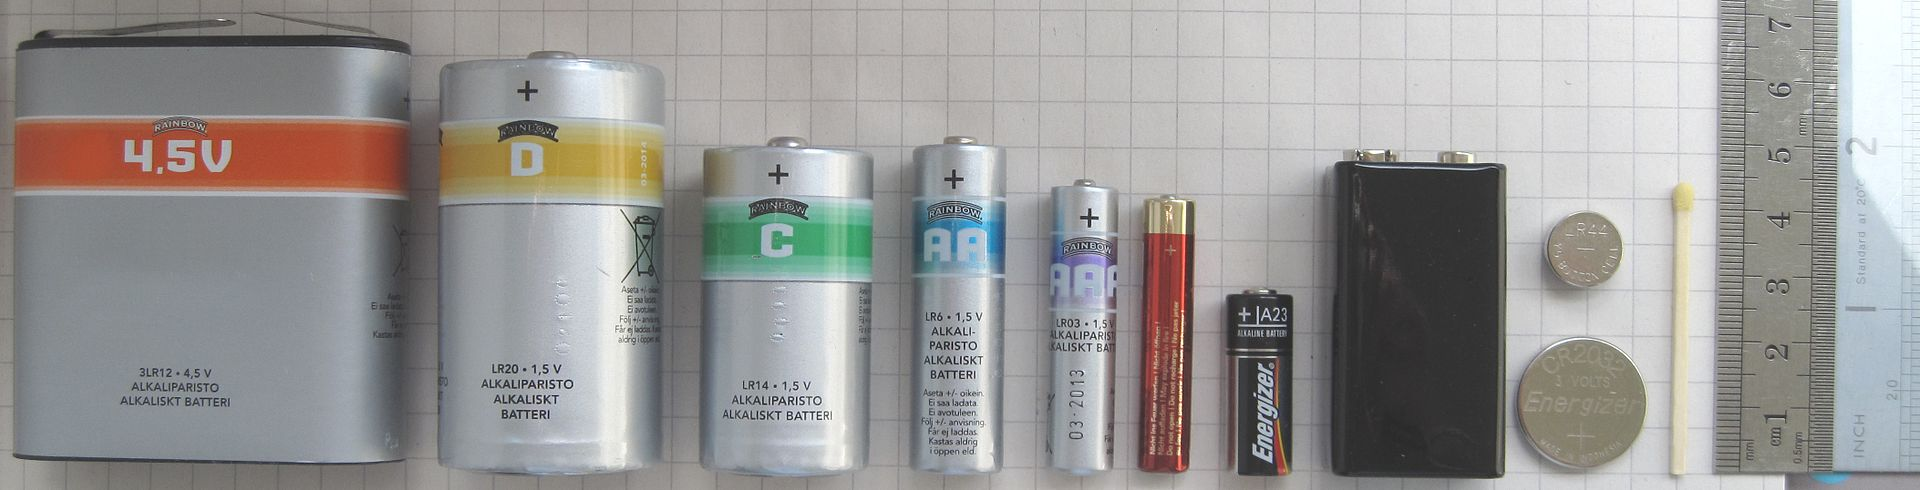 "Common Alakali batteries, from left to right: 4.5v (""Lantern battery""), D, C, AA, AAA, AAAA, A23, 9V, CR2032, LR44, and finally a matchstick and ruler for comparison."